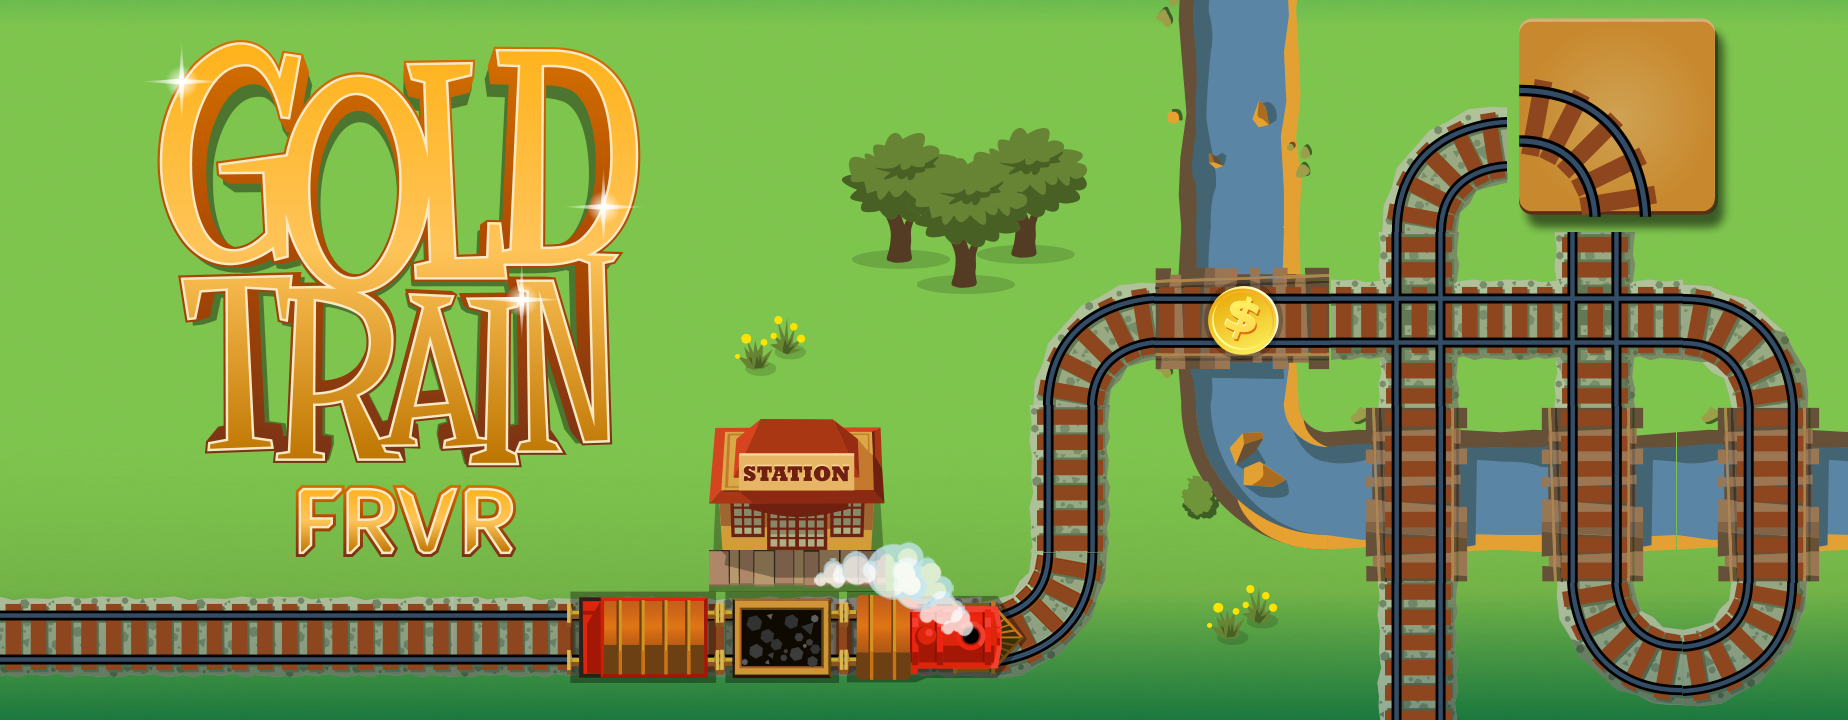 goldtrain-banner_1848x720.png